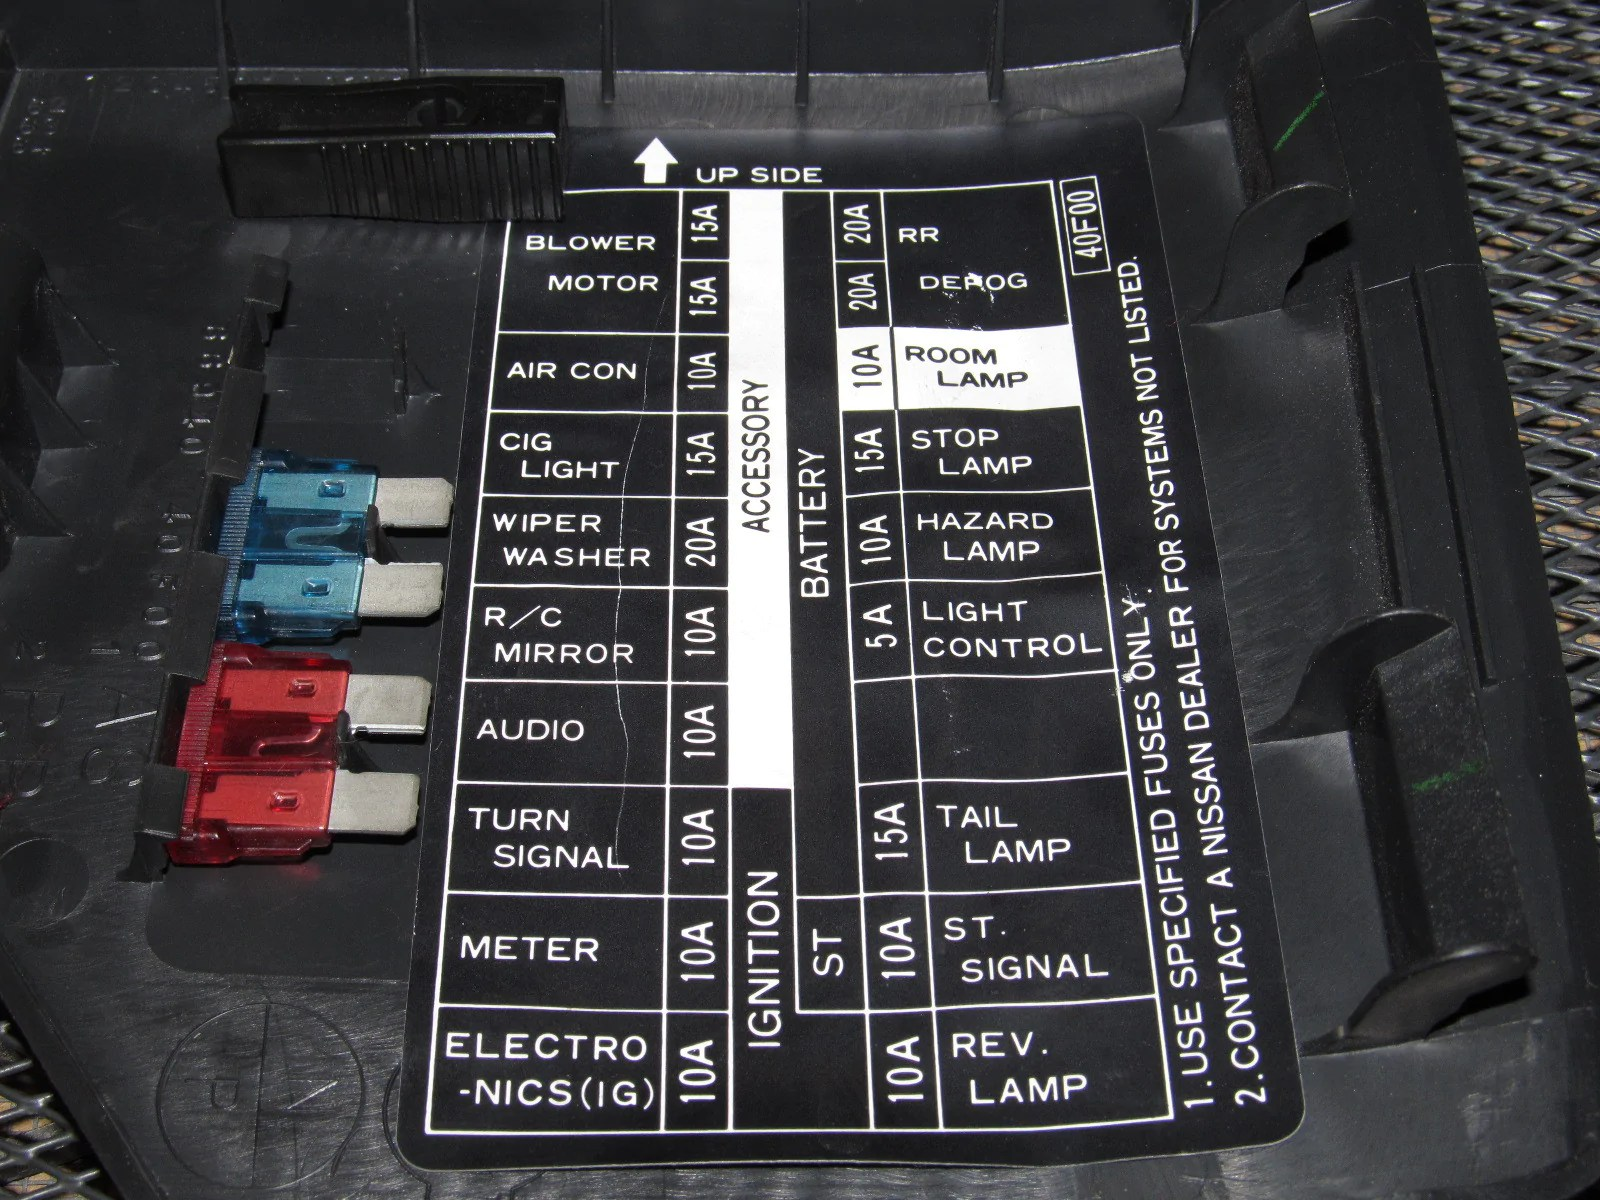 IMG_0241_bc4dfbbf 93f7 4ea2 ba97 c7ba394f9039?resize=618%2C464&ssl=1 1995 nissan 240sx interior fuse box diagram brokeasshome com ba fuse box at couponss.co